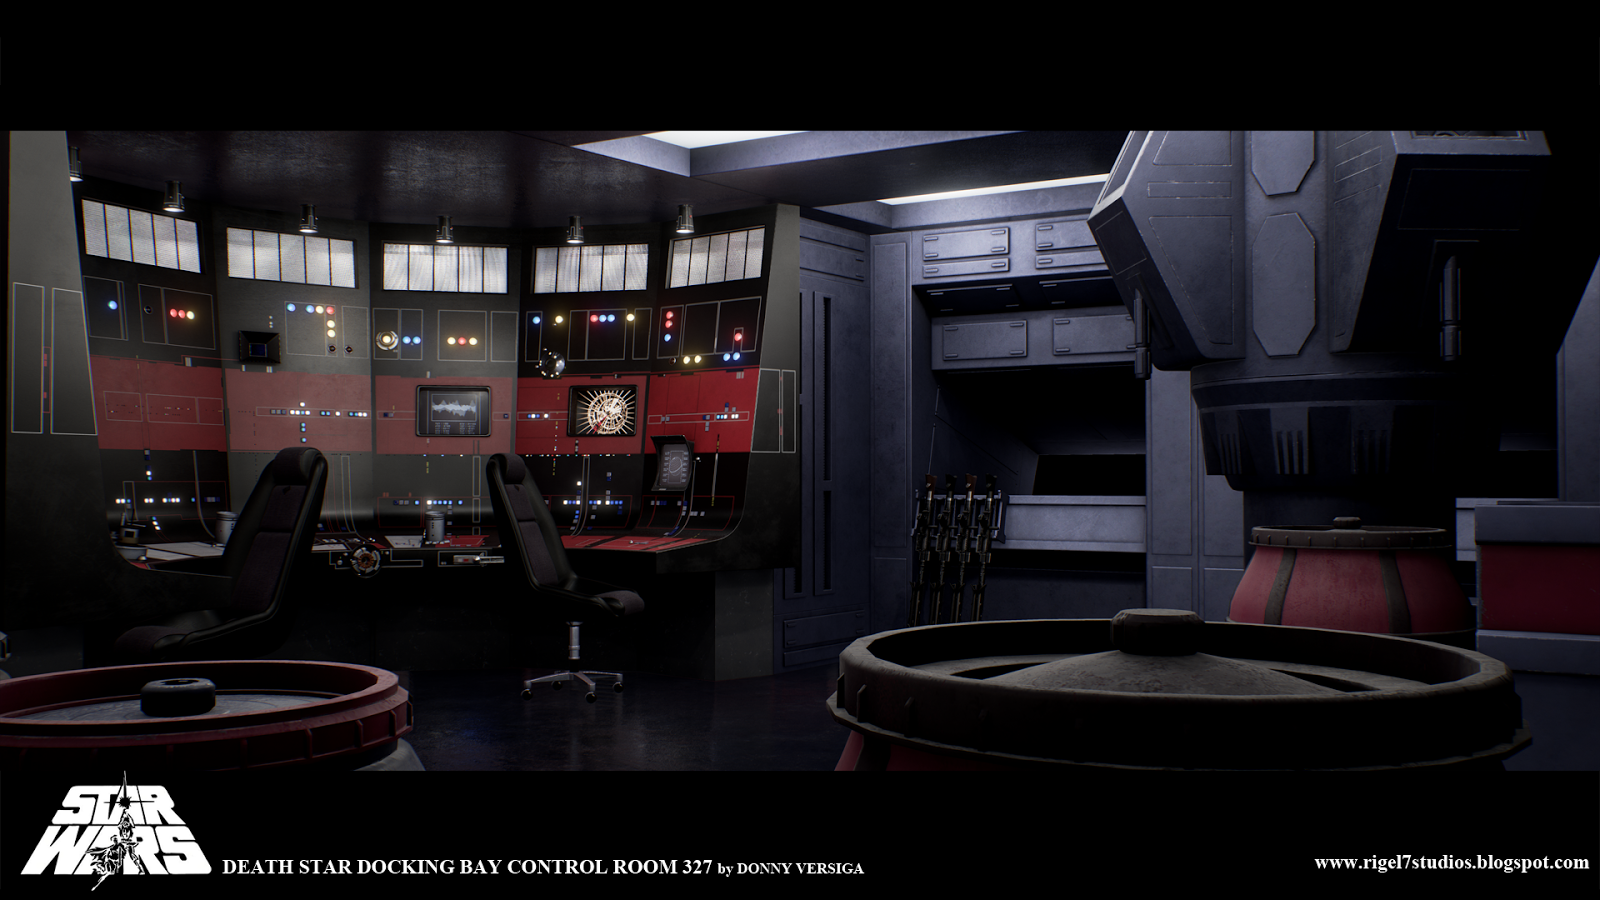 rigel vii death star docking bay control room 327